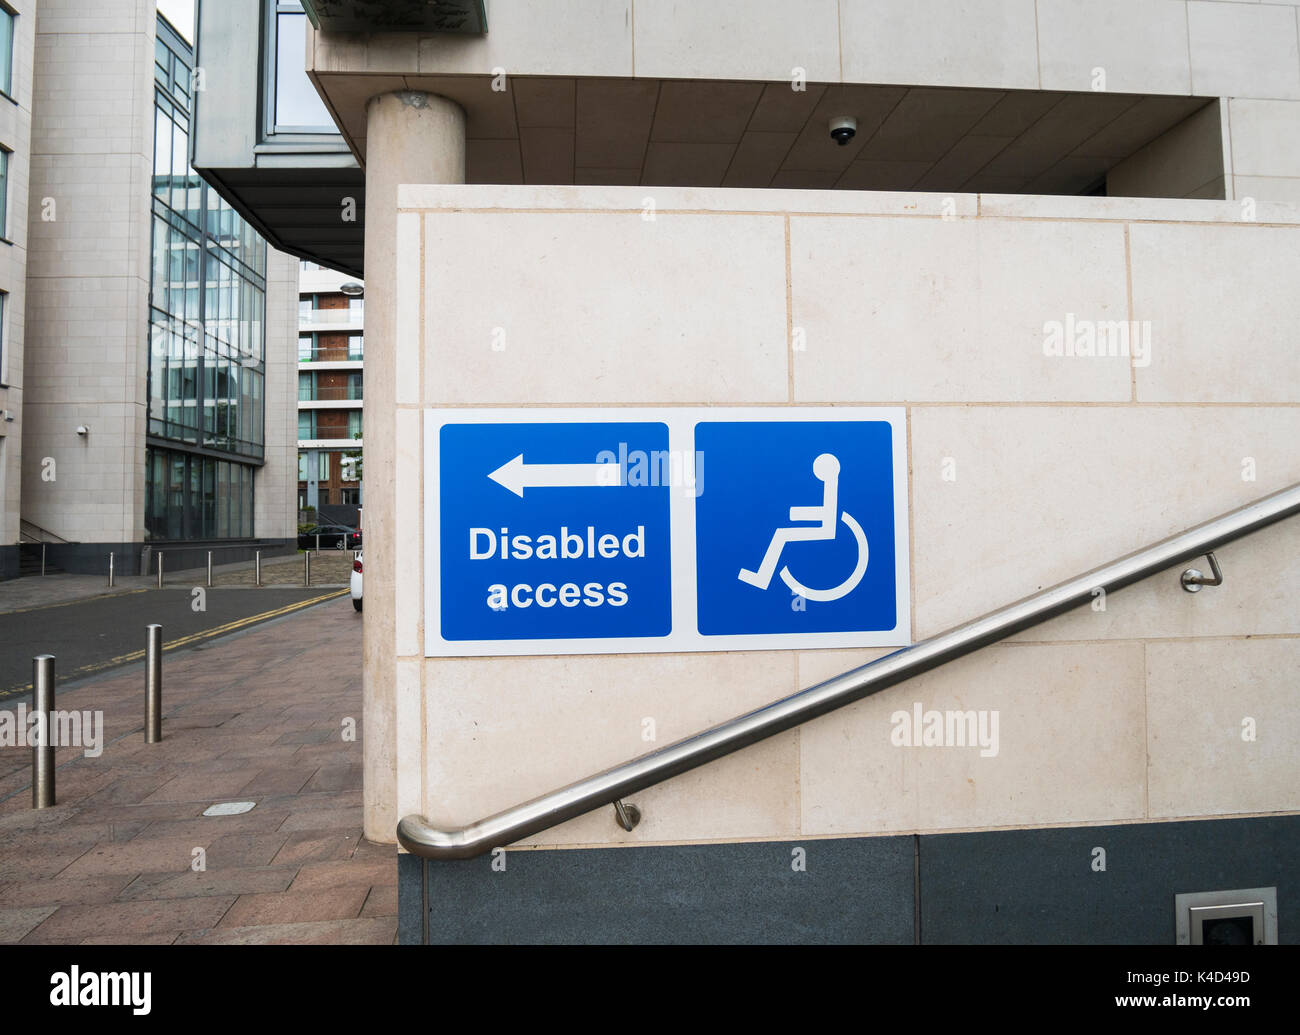 Disabled access sign on a modern Belfast building - Stock Image